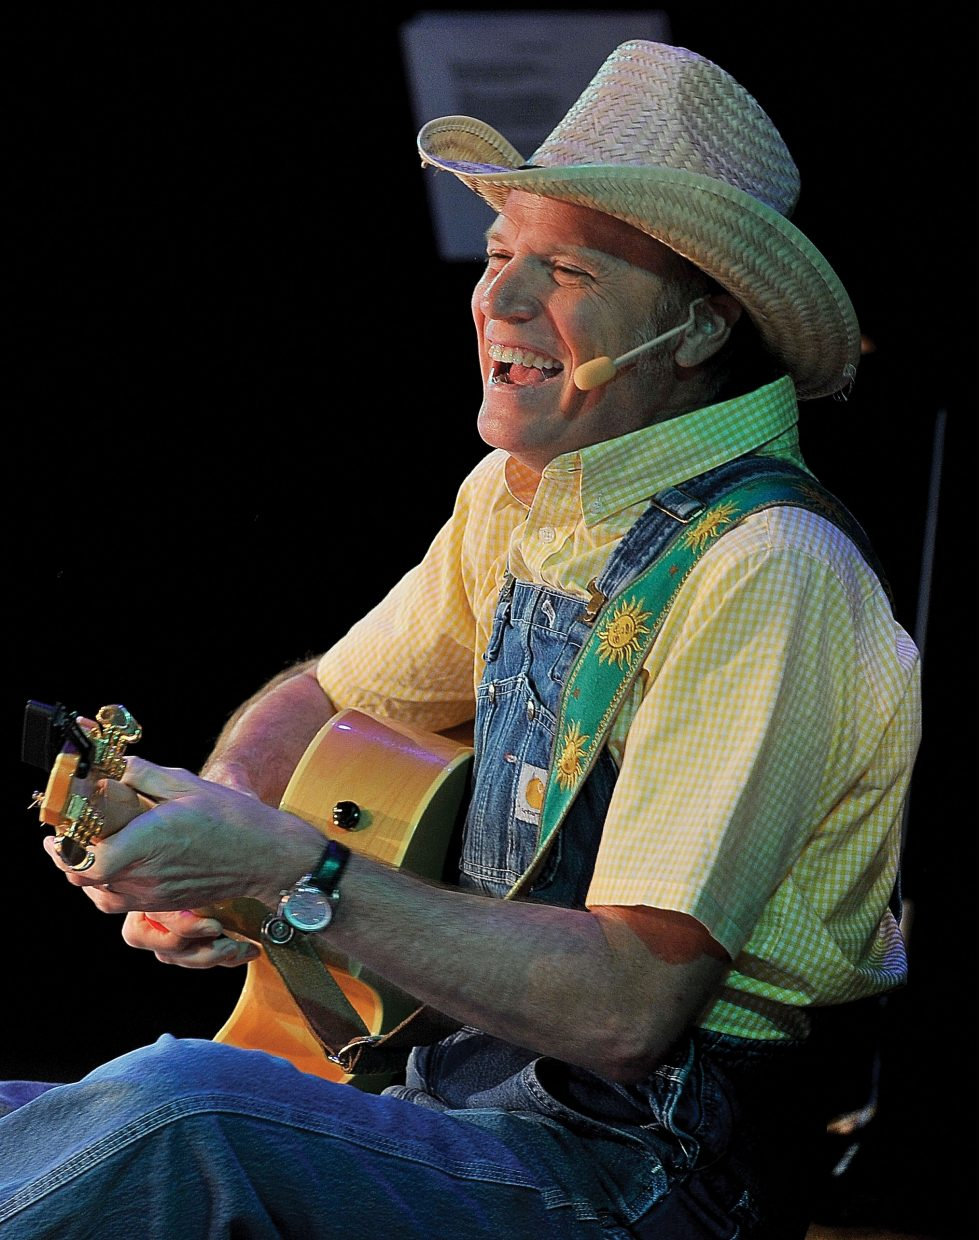 Farmer Jason (Jason Ringenberg) brings his own blend of humor and music to the crowd Tuesday while performing a children's concert at the Strings Music Pavilion.